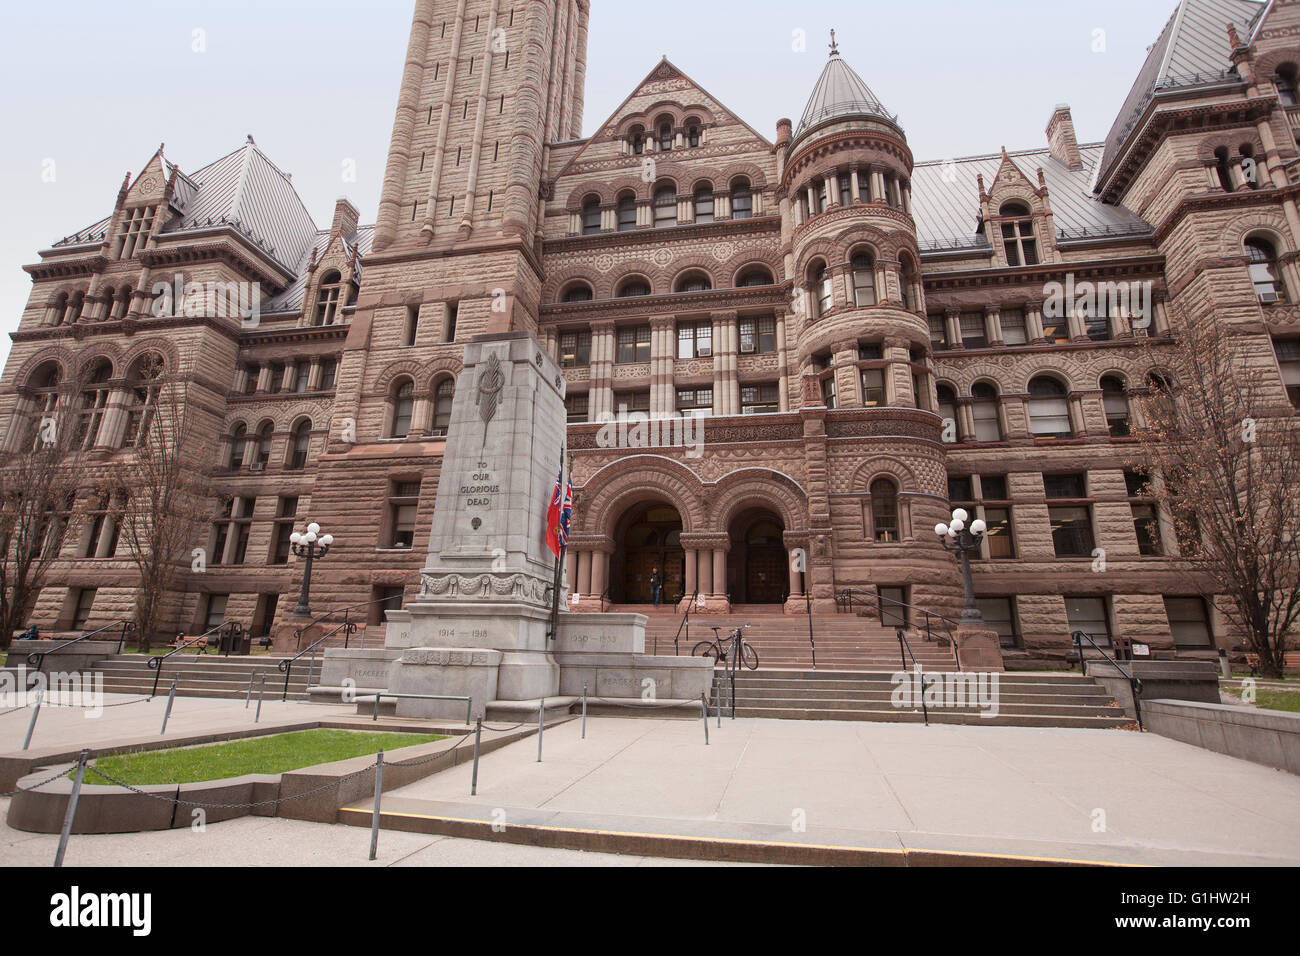 TORONTO - APRIL 28, 2016: Toronto's Old City Hall was home to its city council from 1899 to 1966 and remains one of the city's m Stock Photo